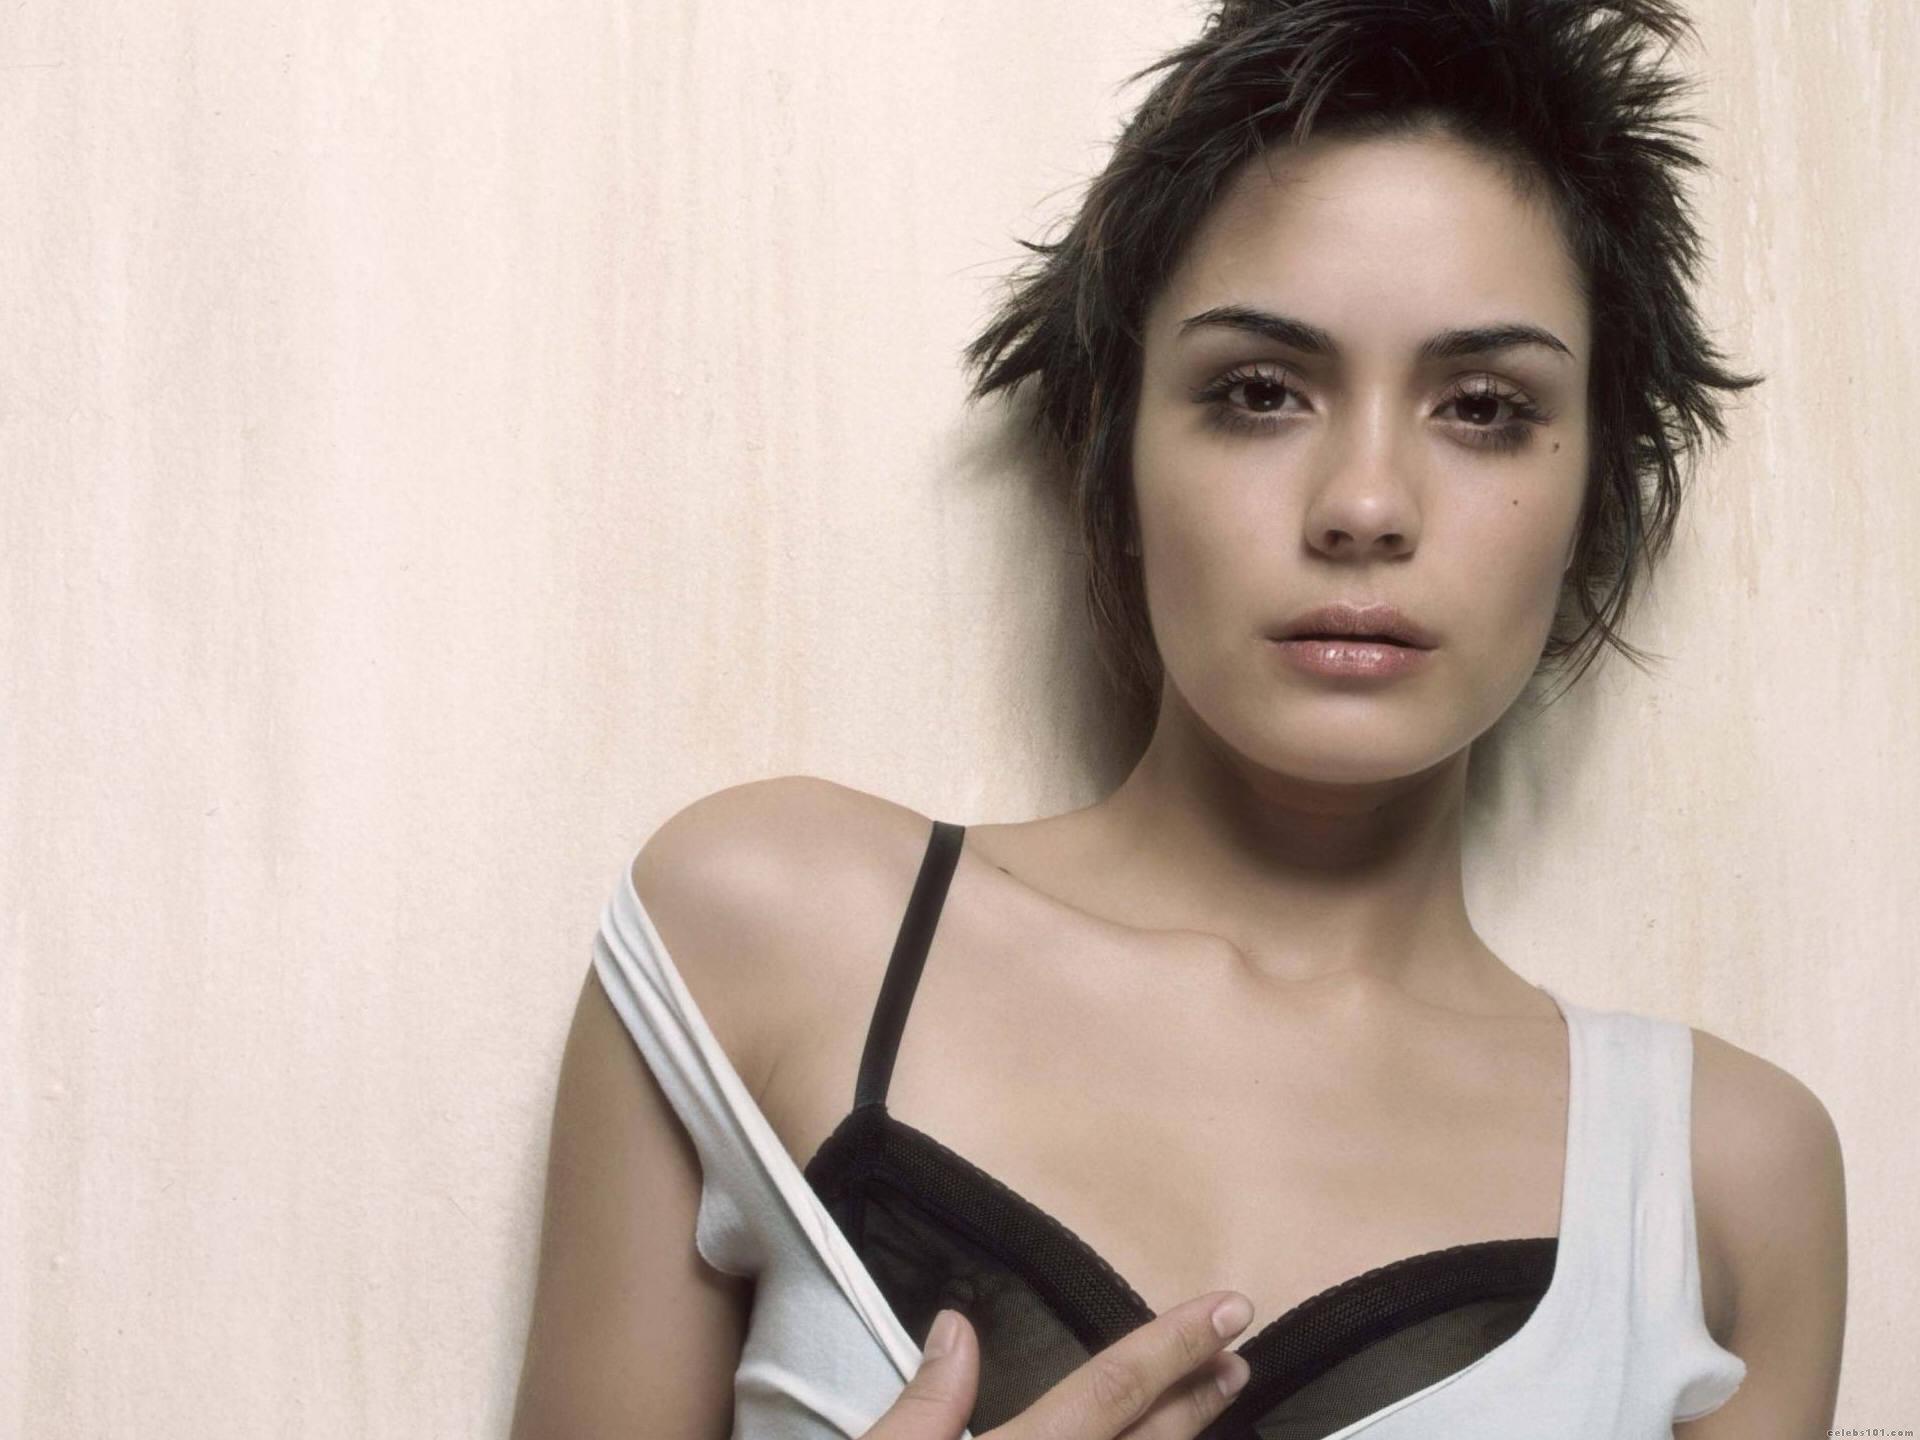 Wallpapers Backgrounds - shannyn sossamon quality wallpaper 1920x1440